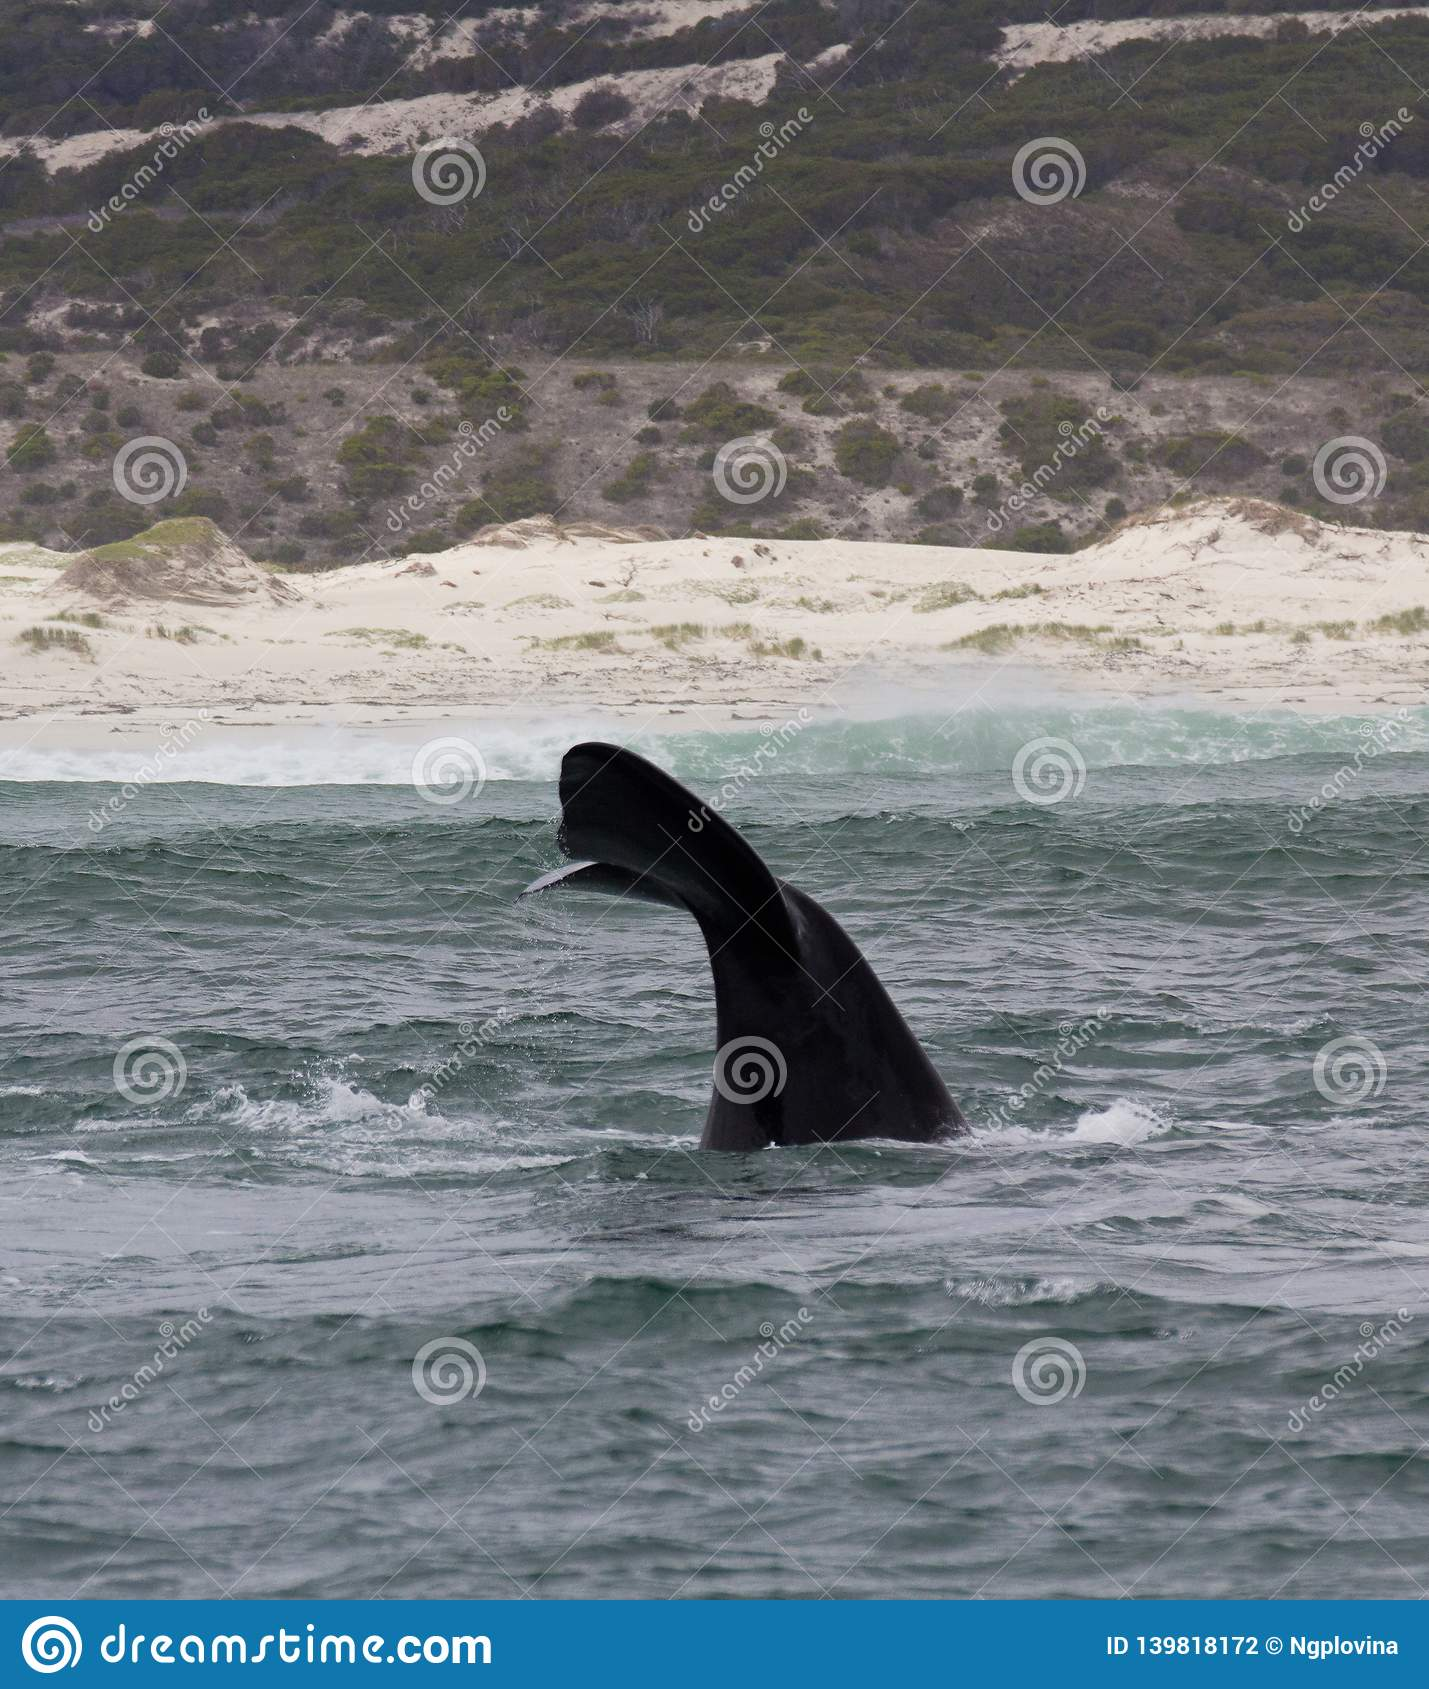 Tail of a Southern Right Whale swimming near Hermanus, Western Cape. South Africa.